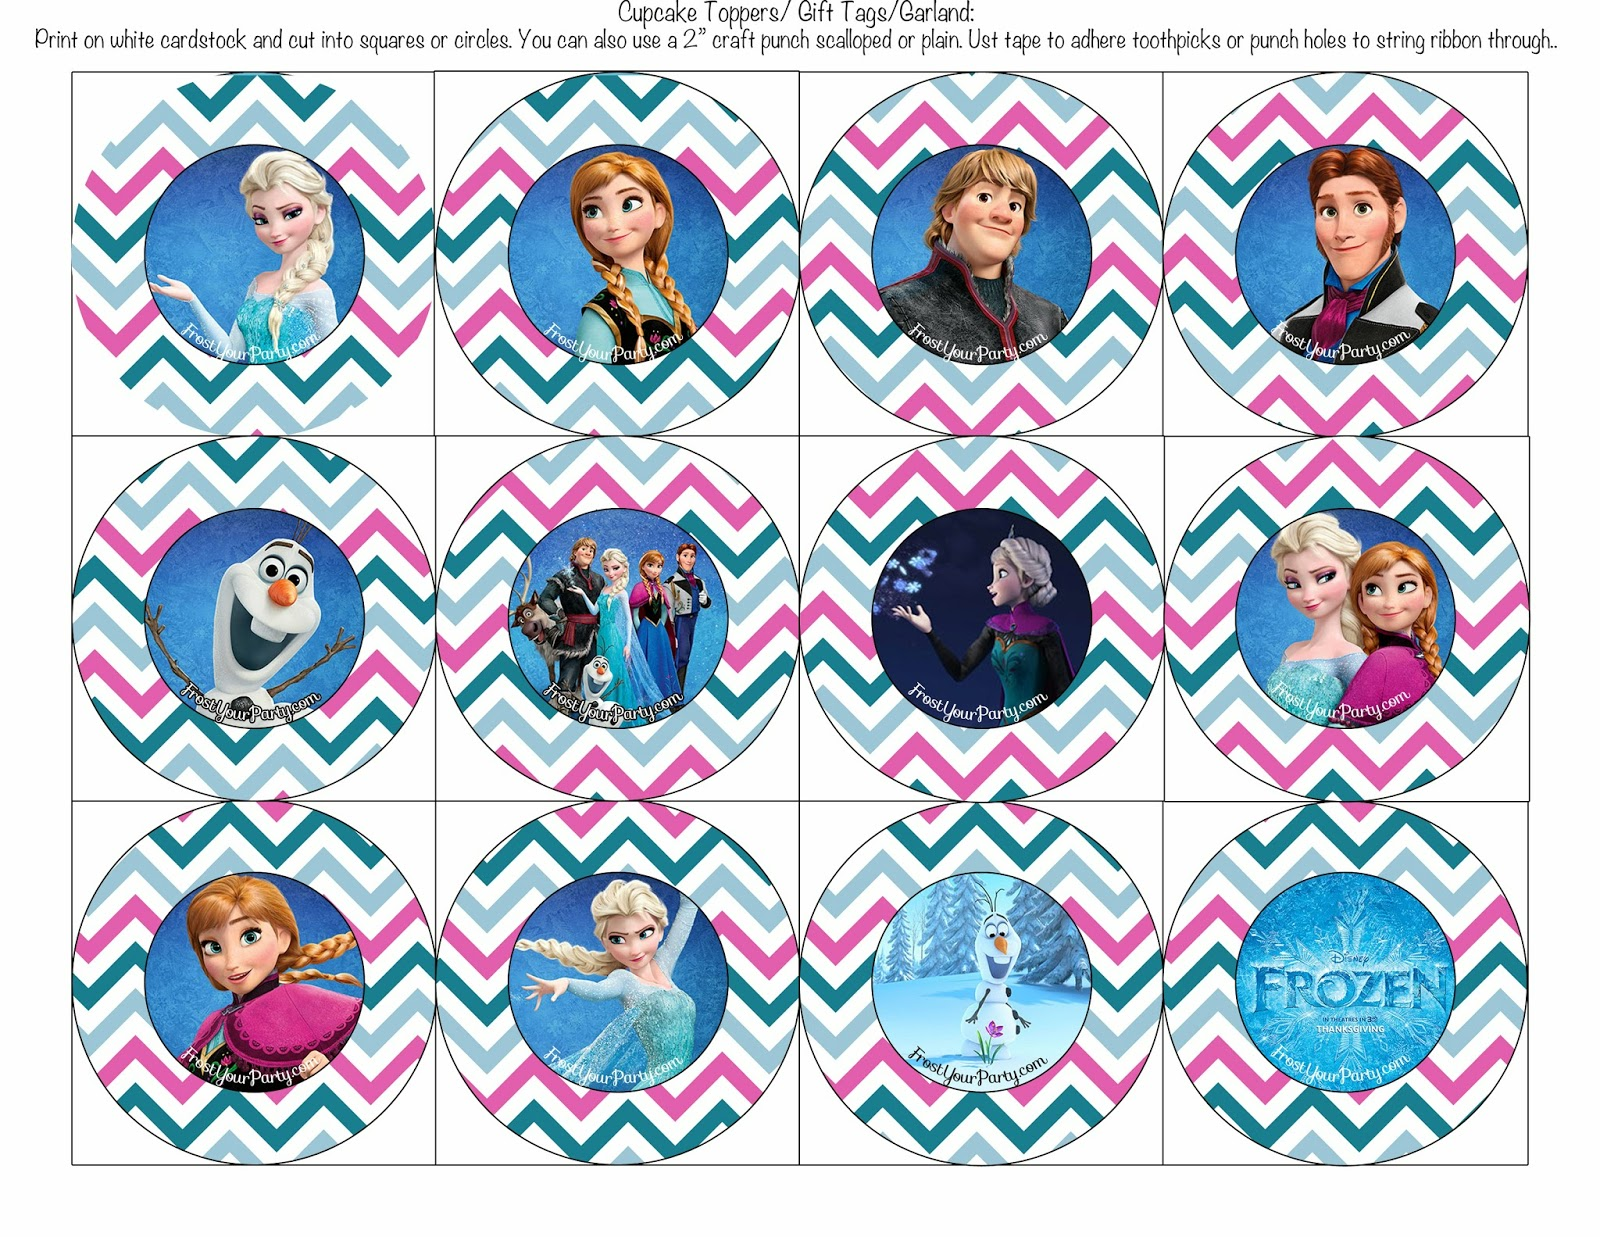 ... Frost Your Party: Free Disney Frozen Printable Party Decorations